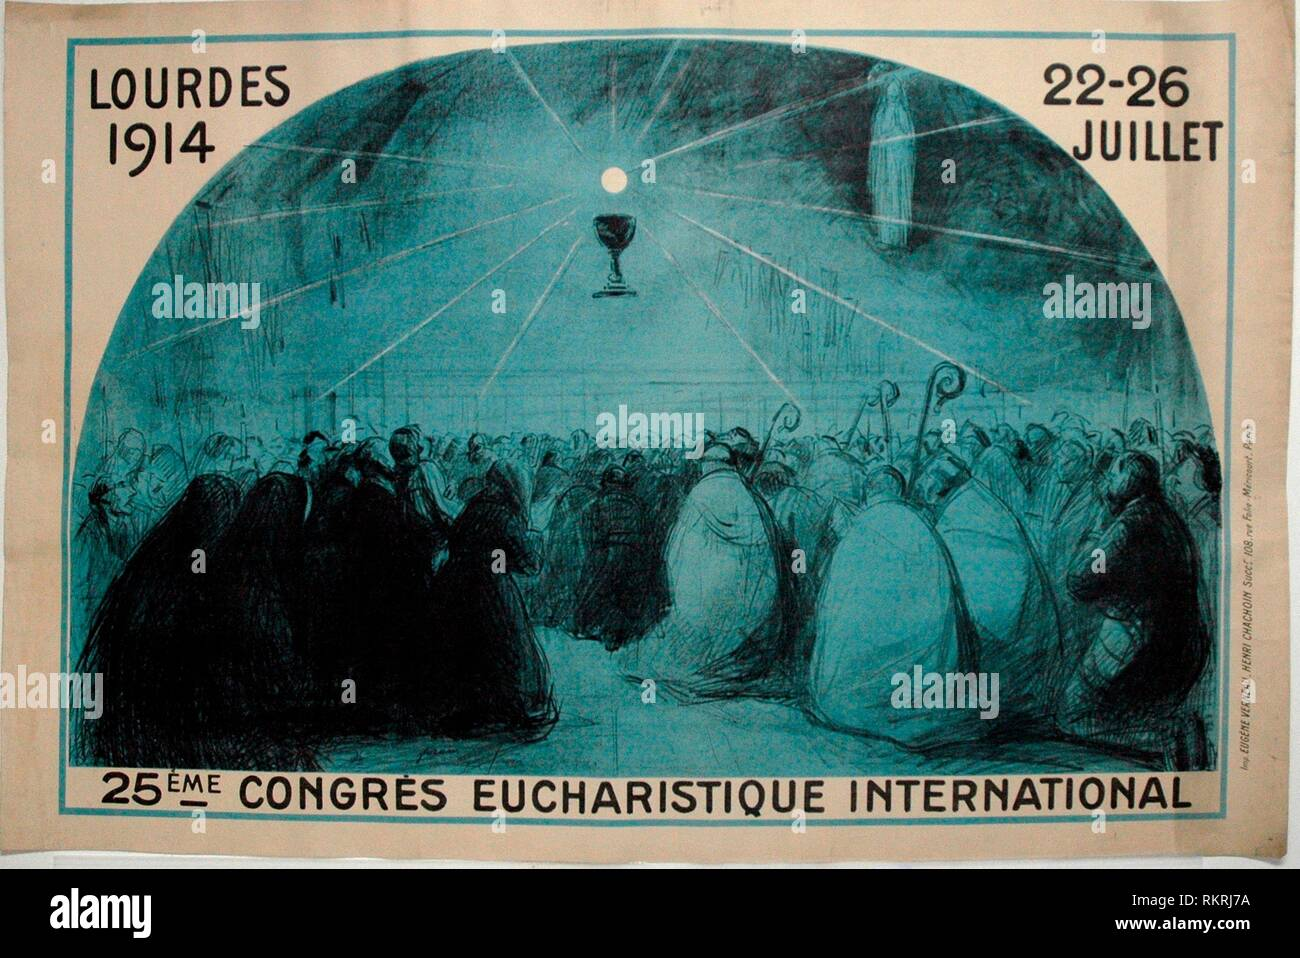 Lourdes, 1914, 25th International Eucharistic Congress - 1914 - Jean Louis Forain (French, 1852-1931 Printed by Eugene Verneau & Henri Chachoin - - Stock Image